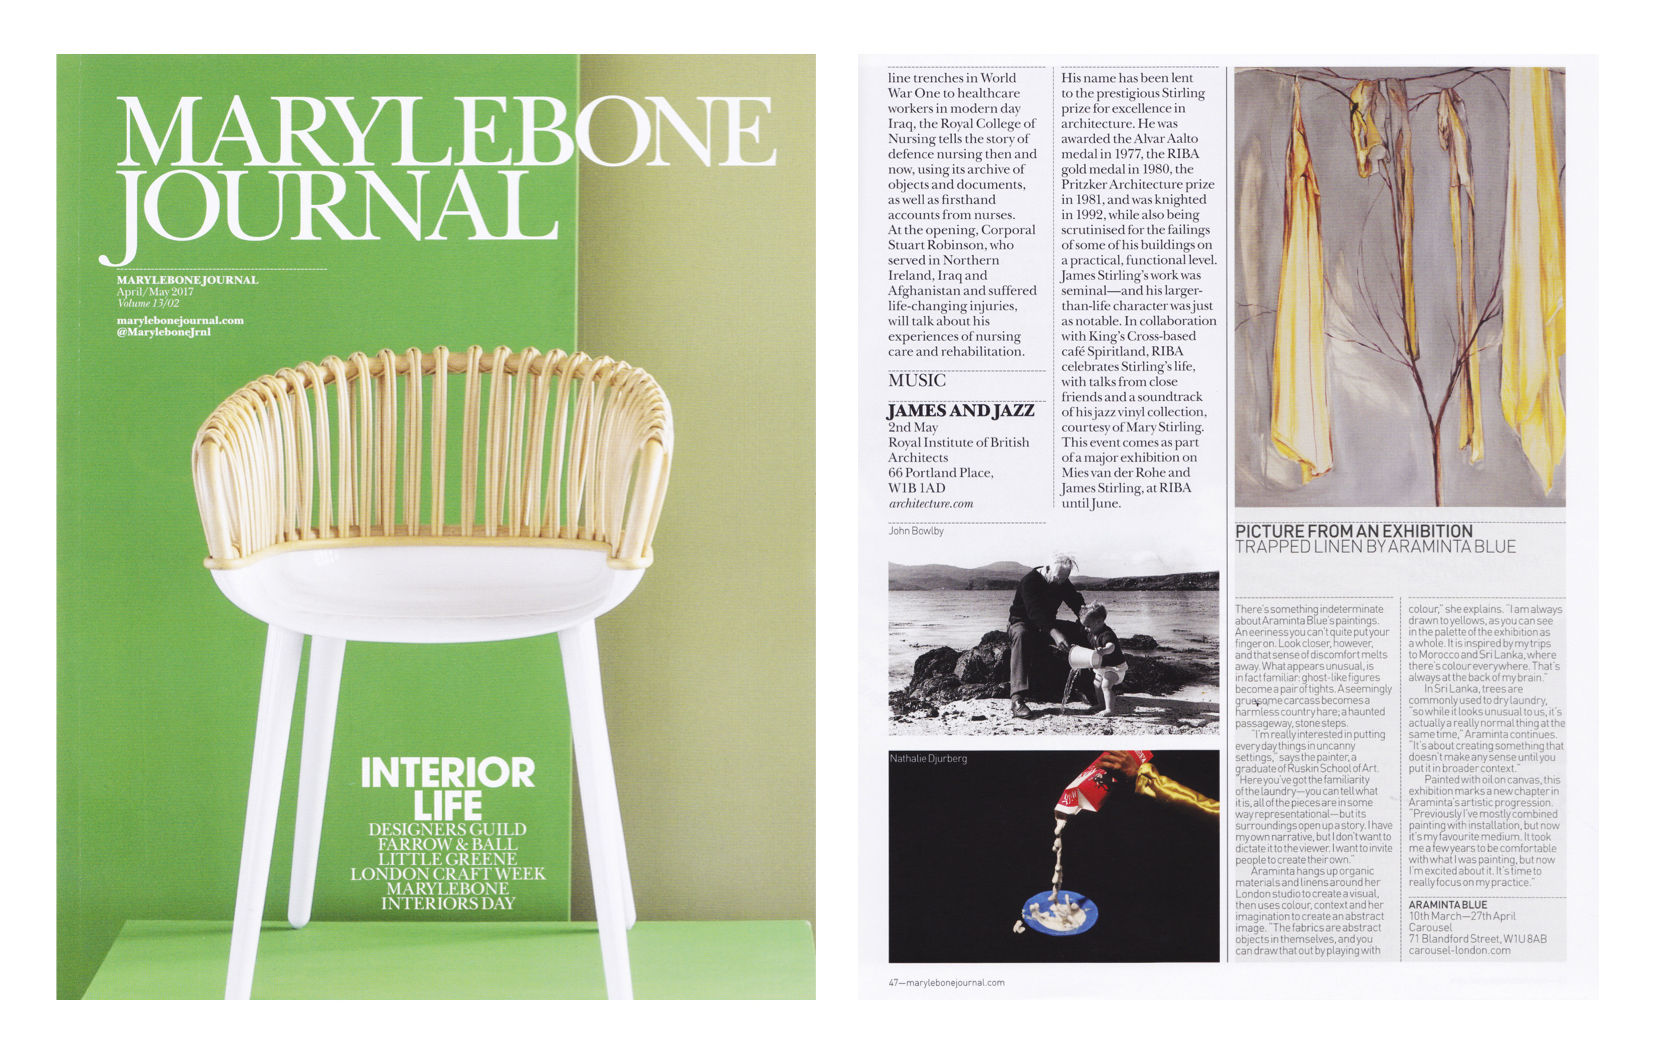 marylebone journal copy